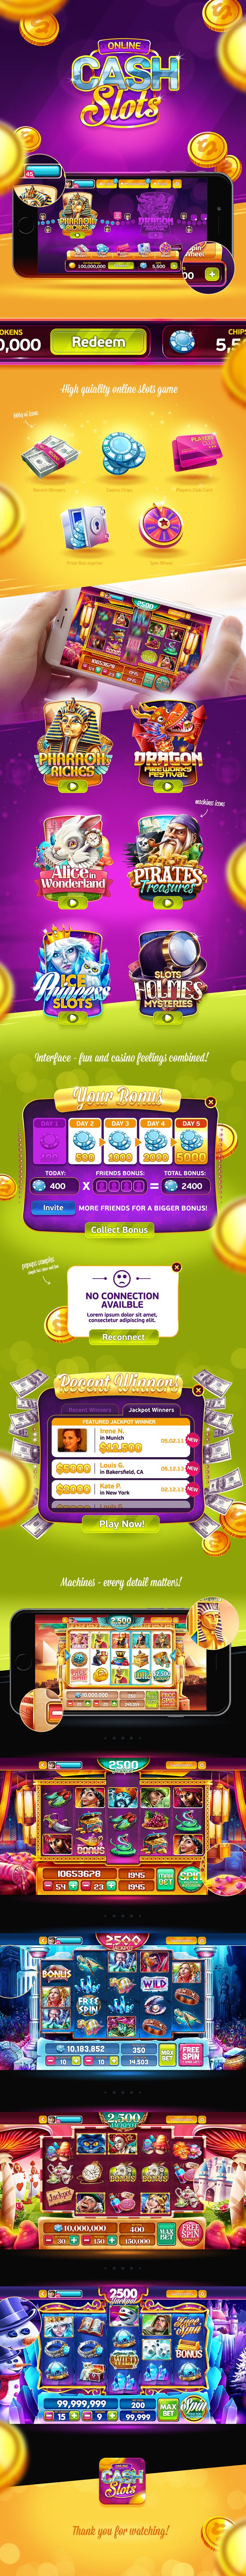 Game UI concept for online slots game.